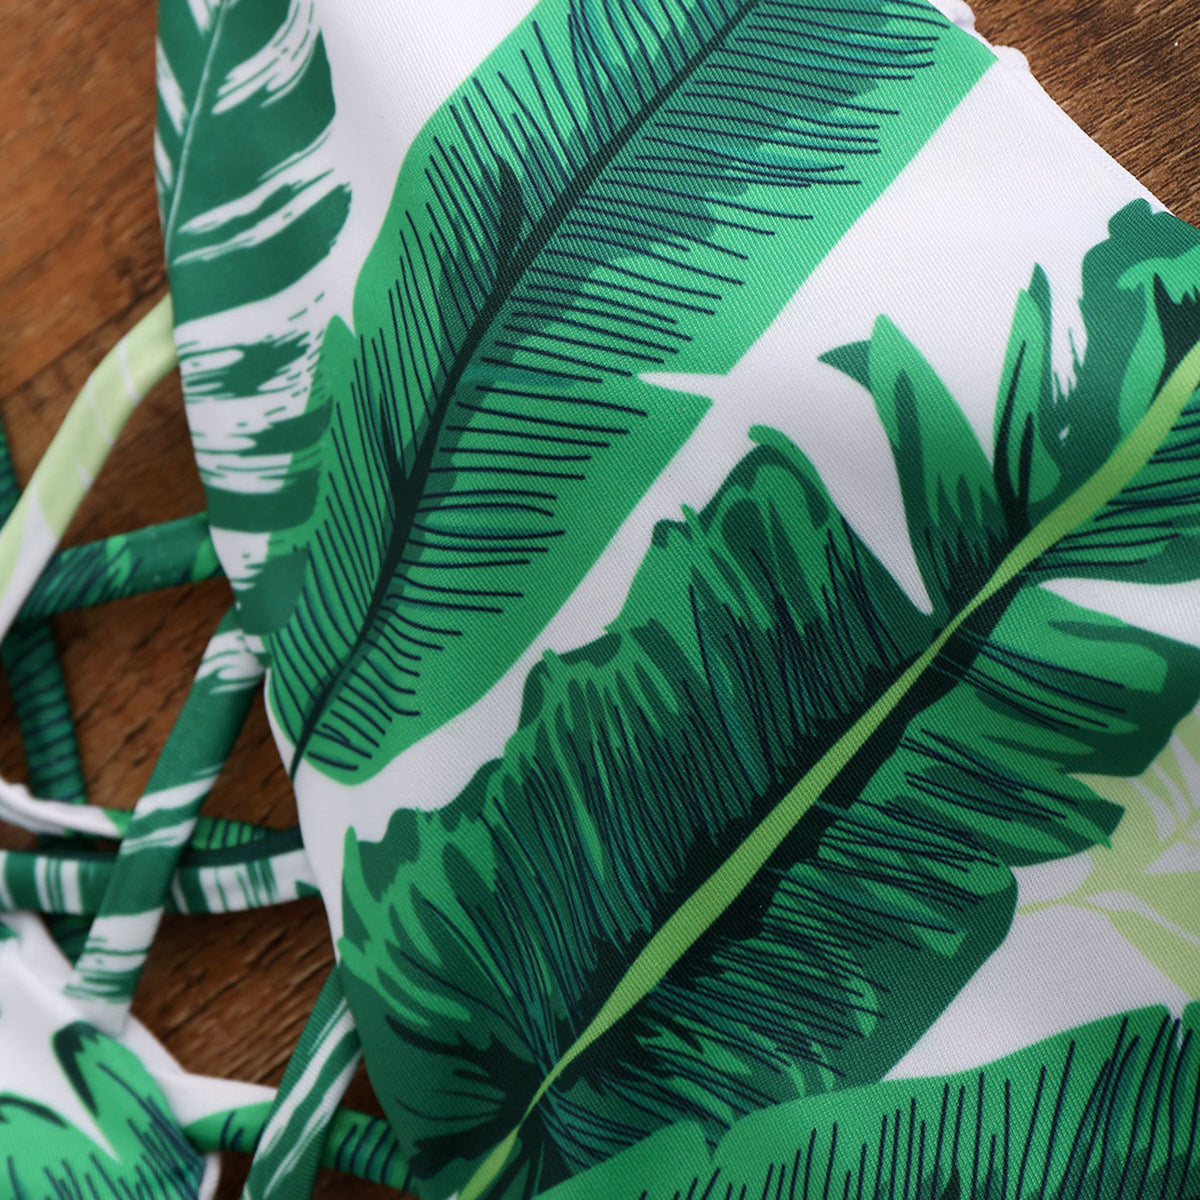 Leaves Print Lace Up One Piece Bikini - worthtryit.com